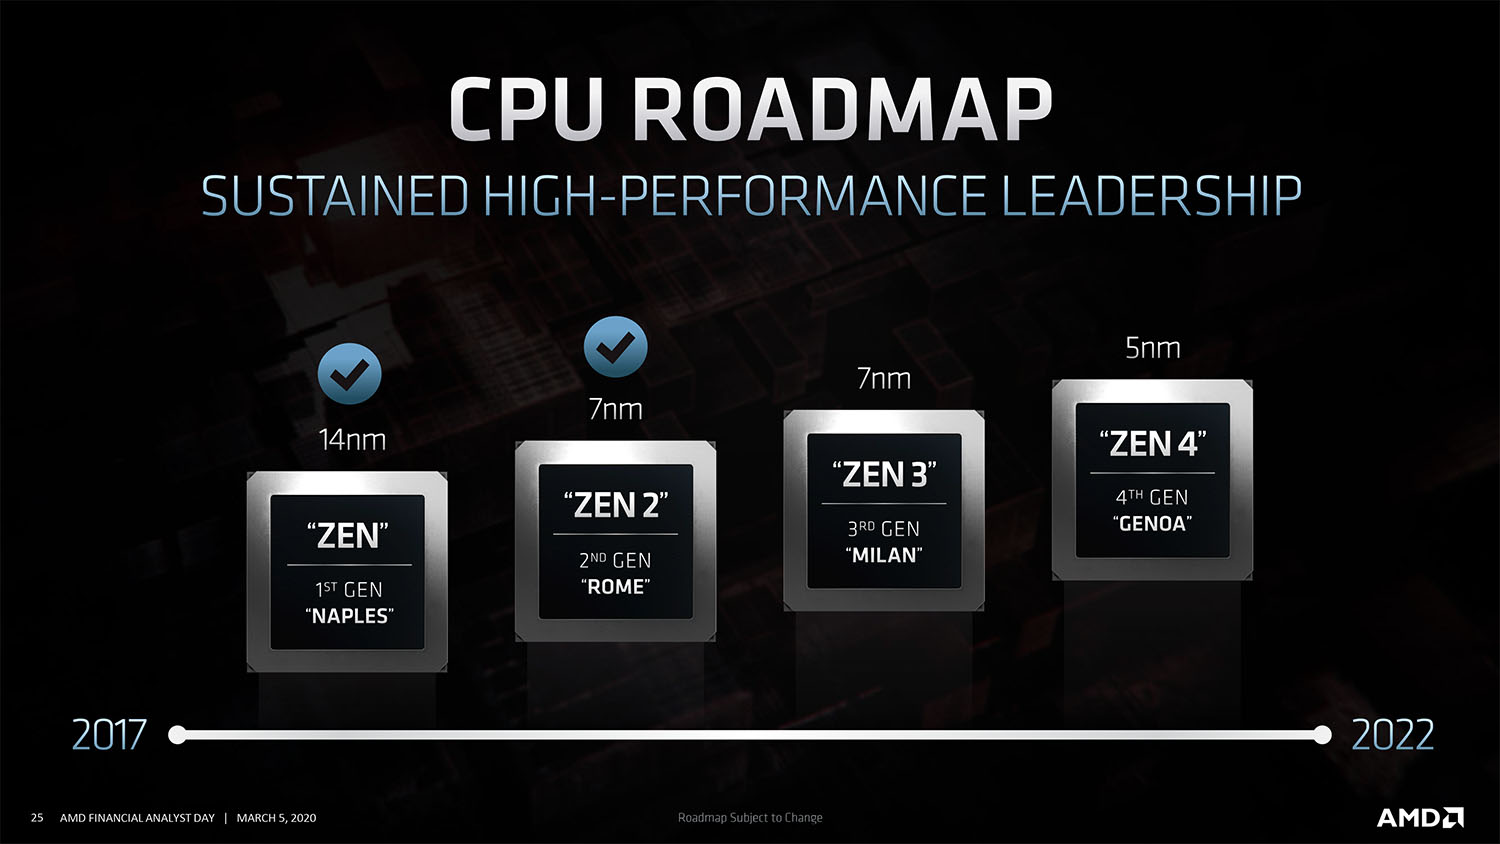 AMD 4th Gen. Ryzen 5nm GENDA CPUs roadmap